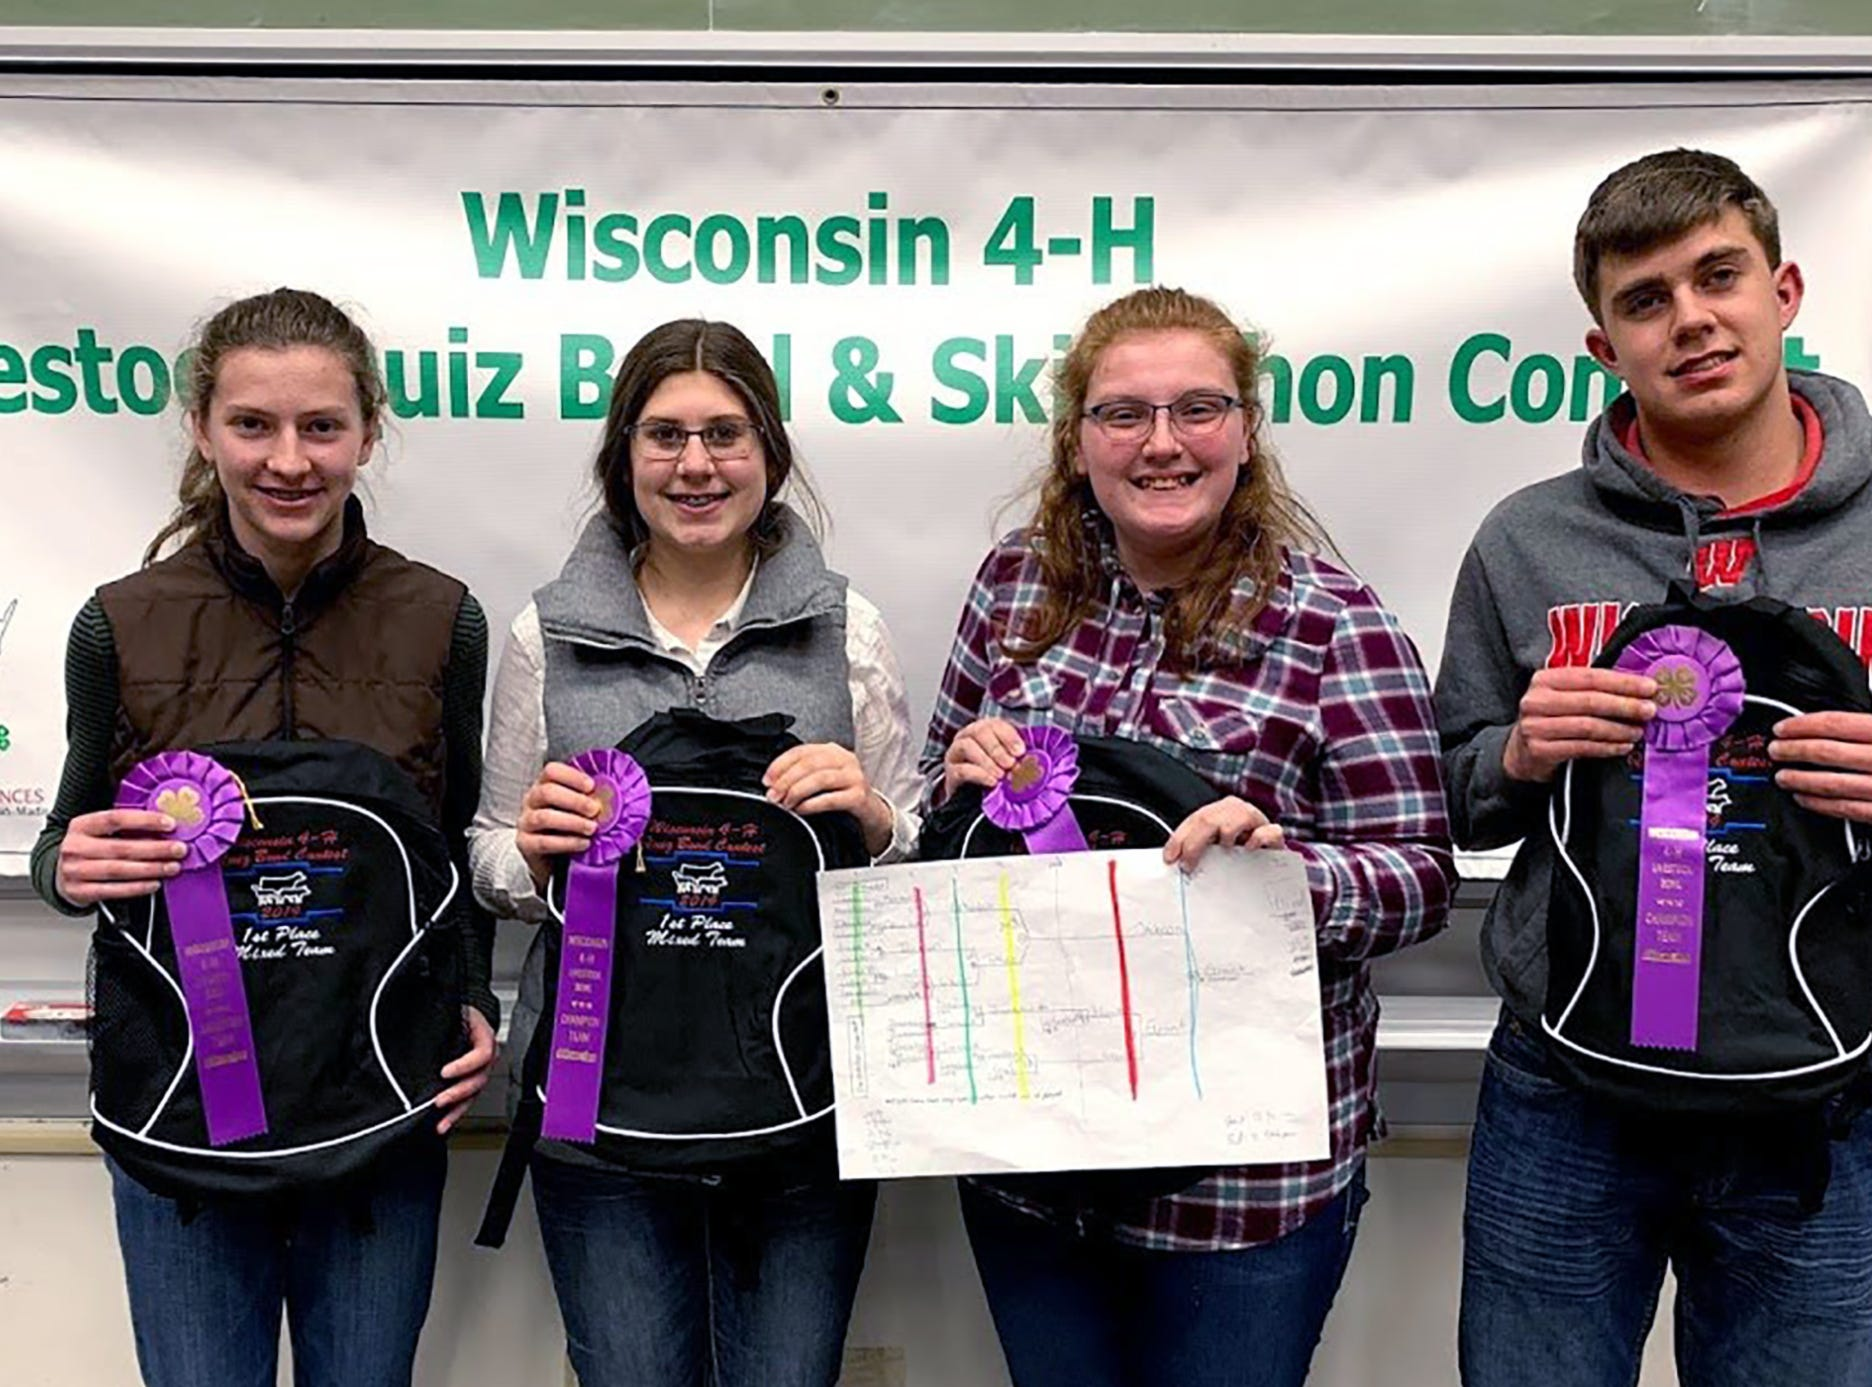 The first place Mixed Quiz Bowl team members from Grant County are pictured (from left) Jessica Patterson, Avery Crooks, Alayna Barth, Mason Crooks.